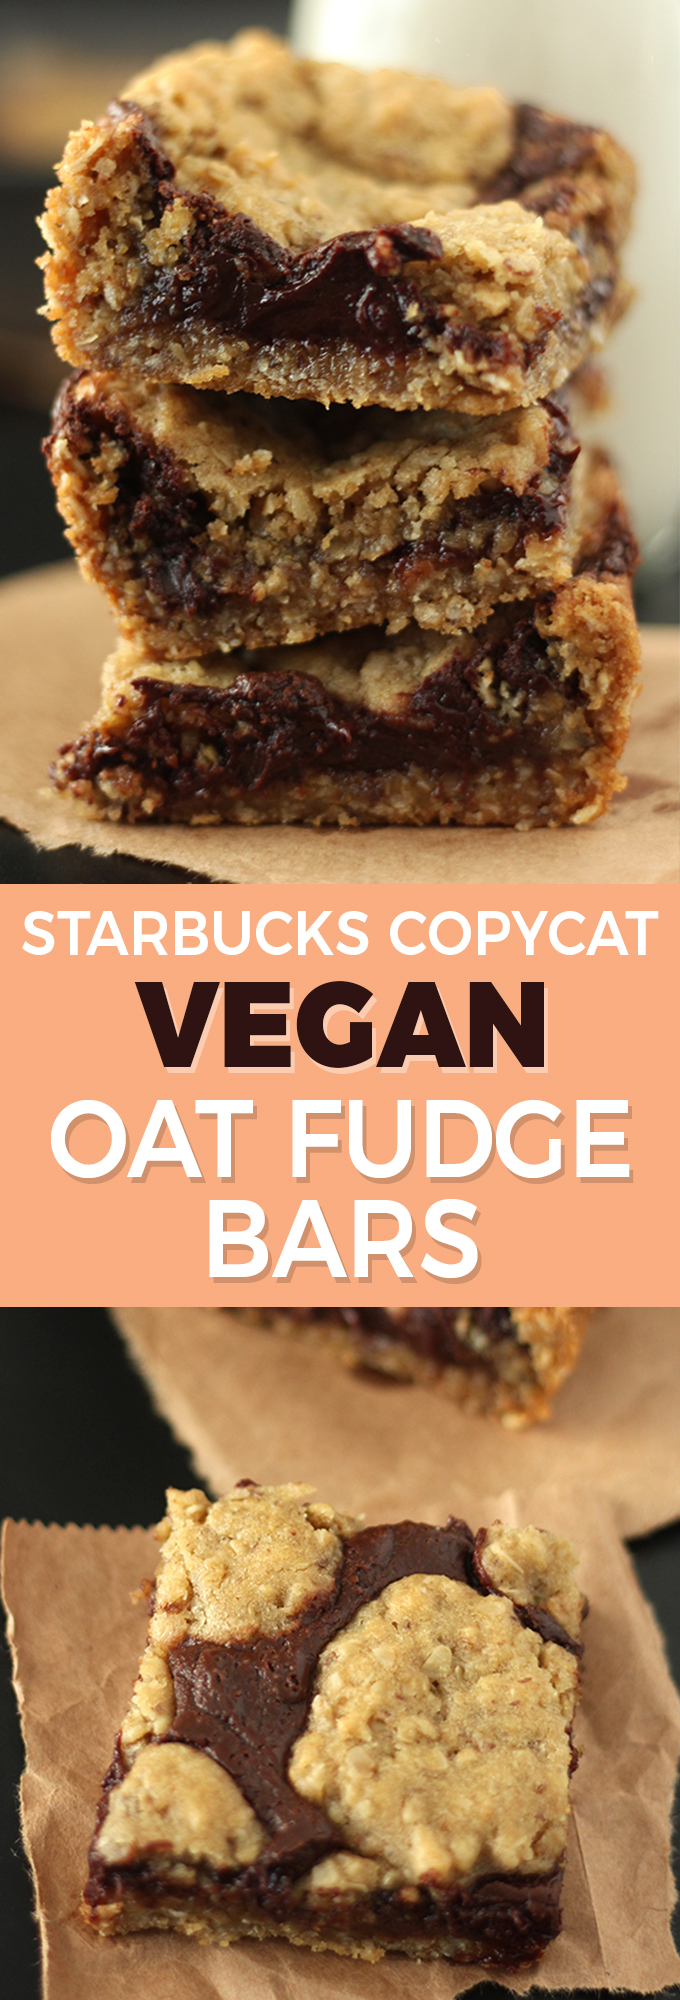 All the rich, chocolatey goodness of your favourite Starbucks Oat Fudge Bars, made totally vegan!